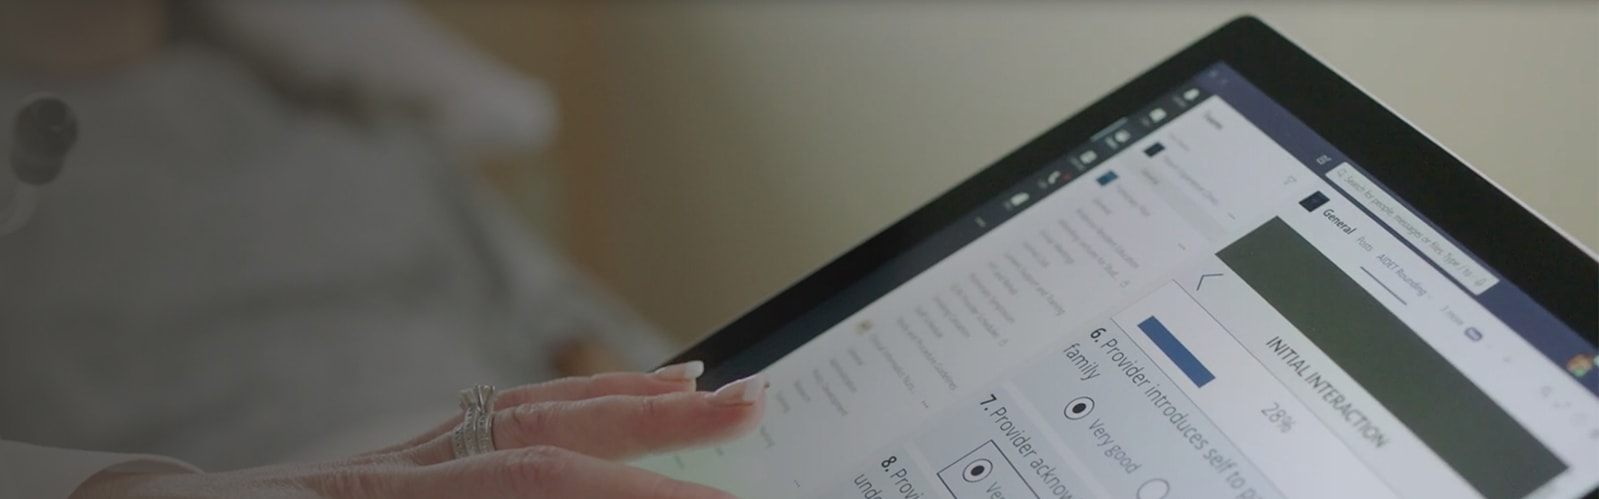 A person's hand touching a tablet device screen that shows a healthcare intake form.